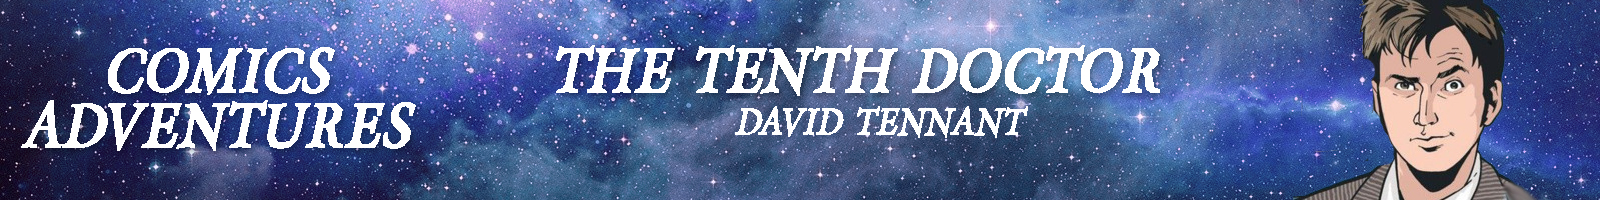 The Tenth Doctor Comics